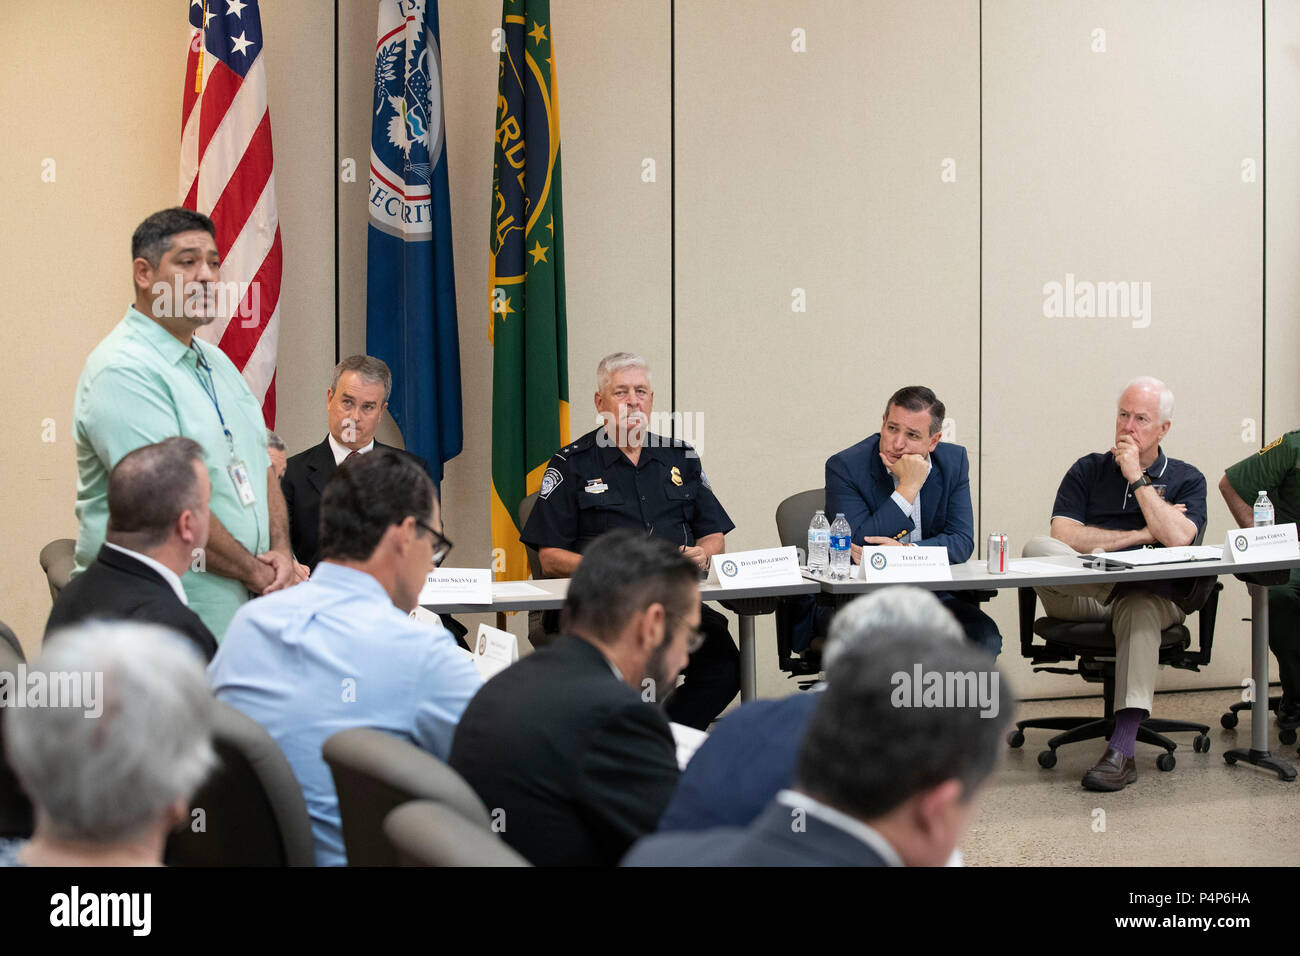 Jose Gonzales, field supervisor for the Department of Health & Human Services' Office of  Refugee Resettlement, speaks as federal and Texas officials and stakeholders meet in a round-table discussion of the immigration crisis hitting the Texas-Mexico border as confusion reigned regarding reuniting of separated parents and children. - Stock Image